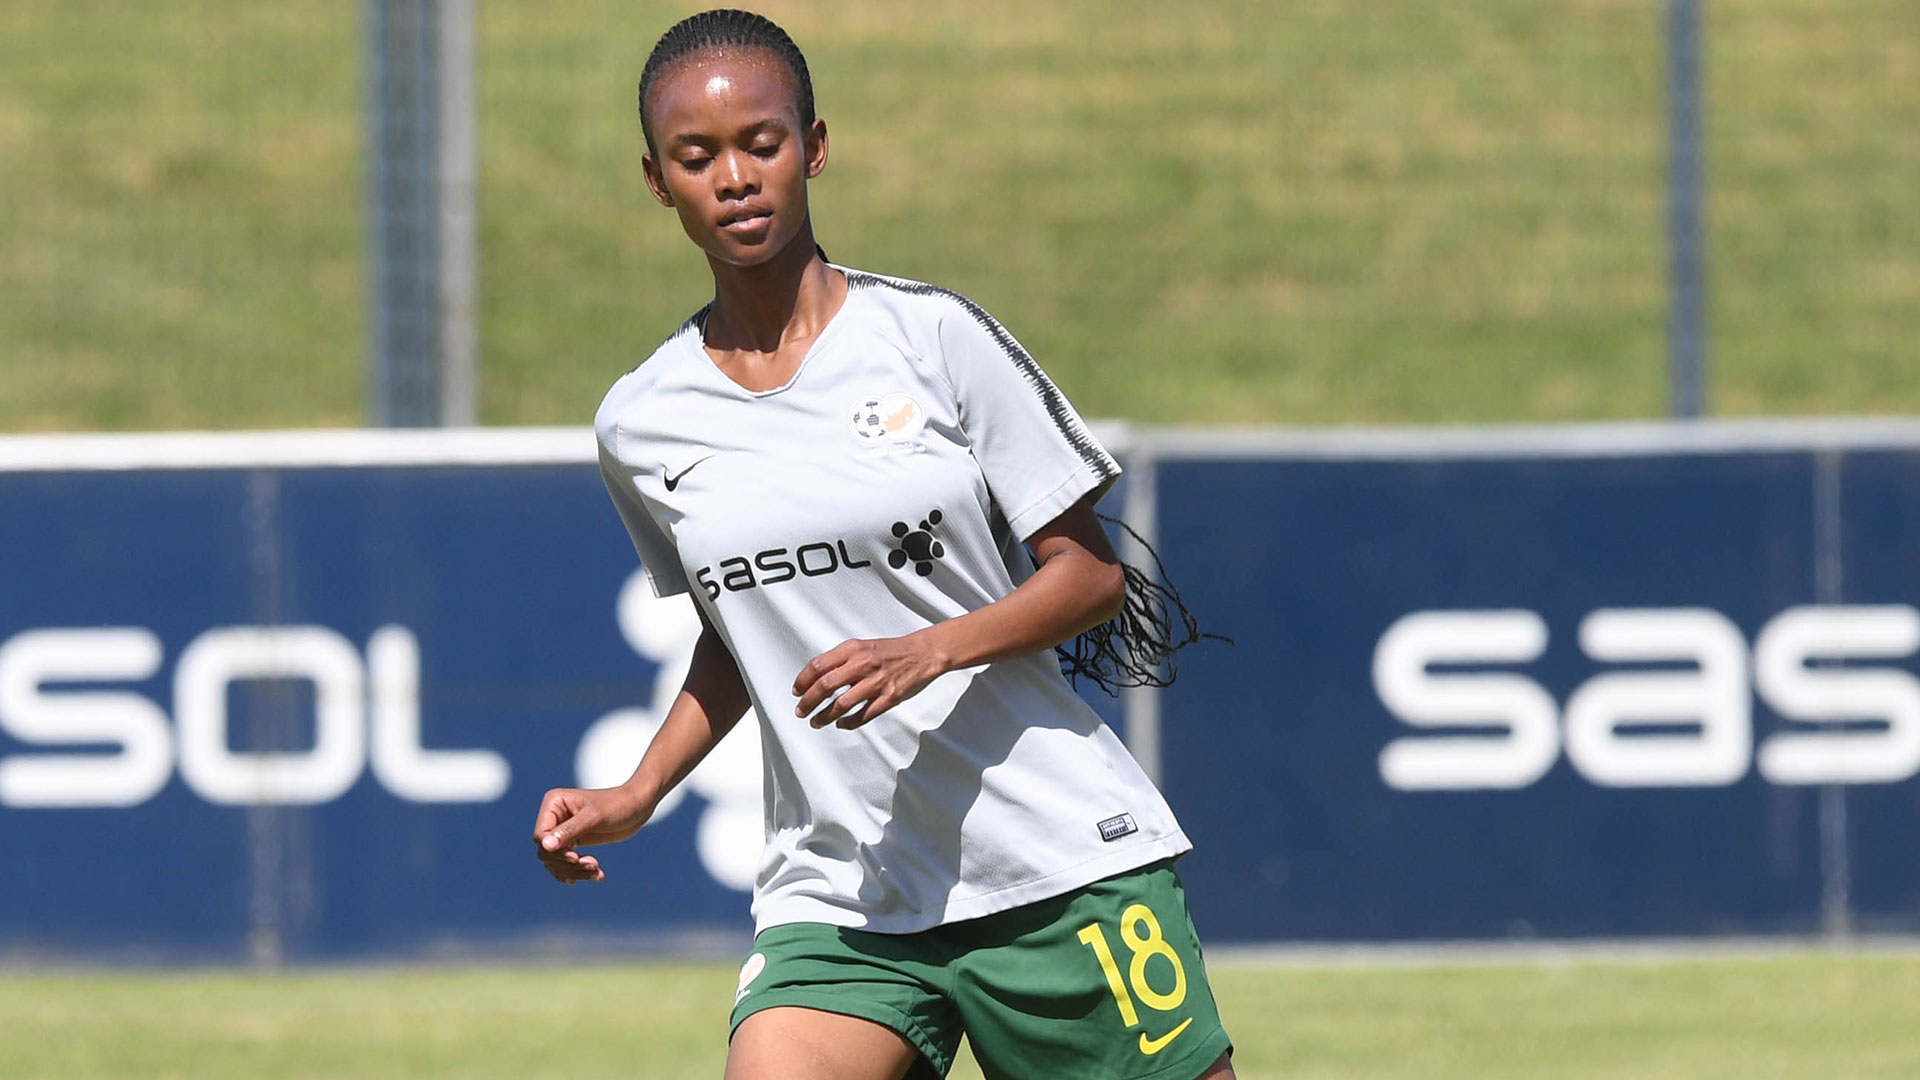 Sasol Banyana Banyana player, neliswa Luthi training during 2020 COSAFA Cup